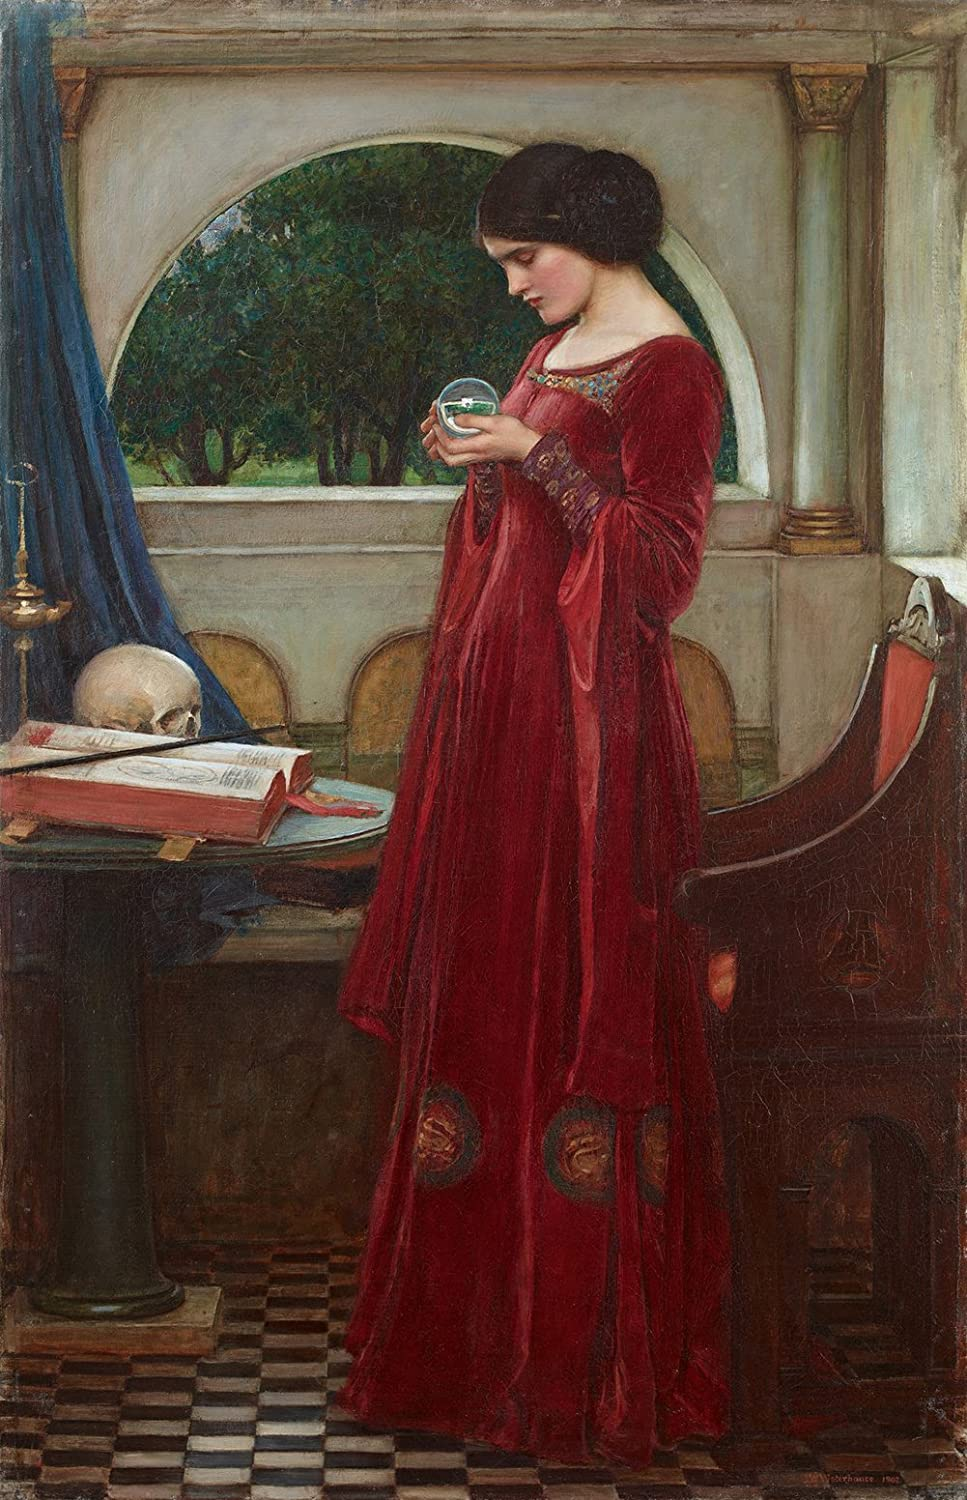 John William Waterhouse - The Crystal Ball, Size 16x24 inch, Poster art print wall décor